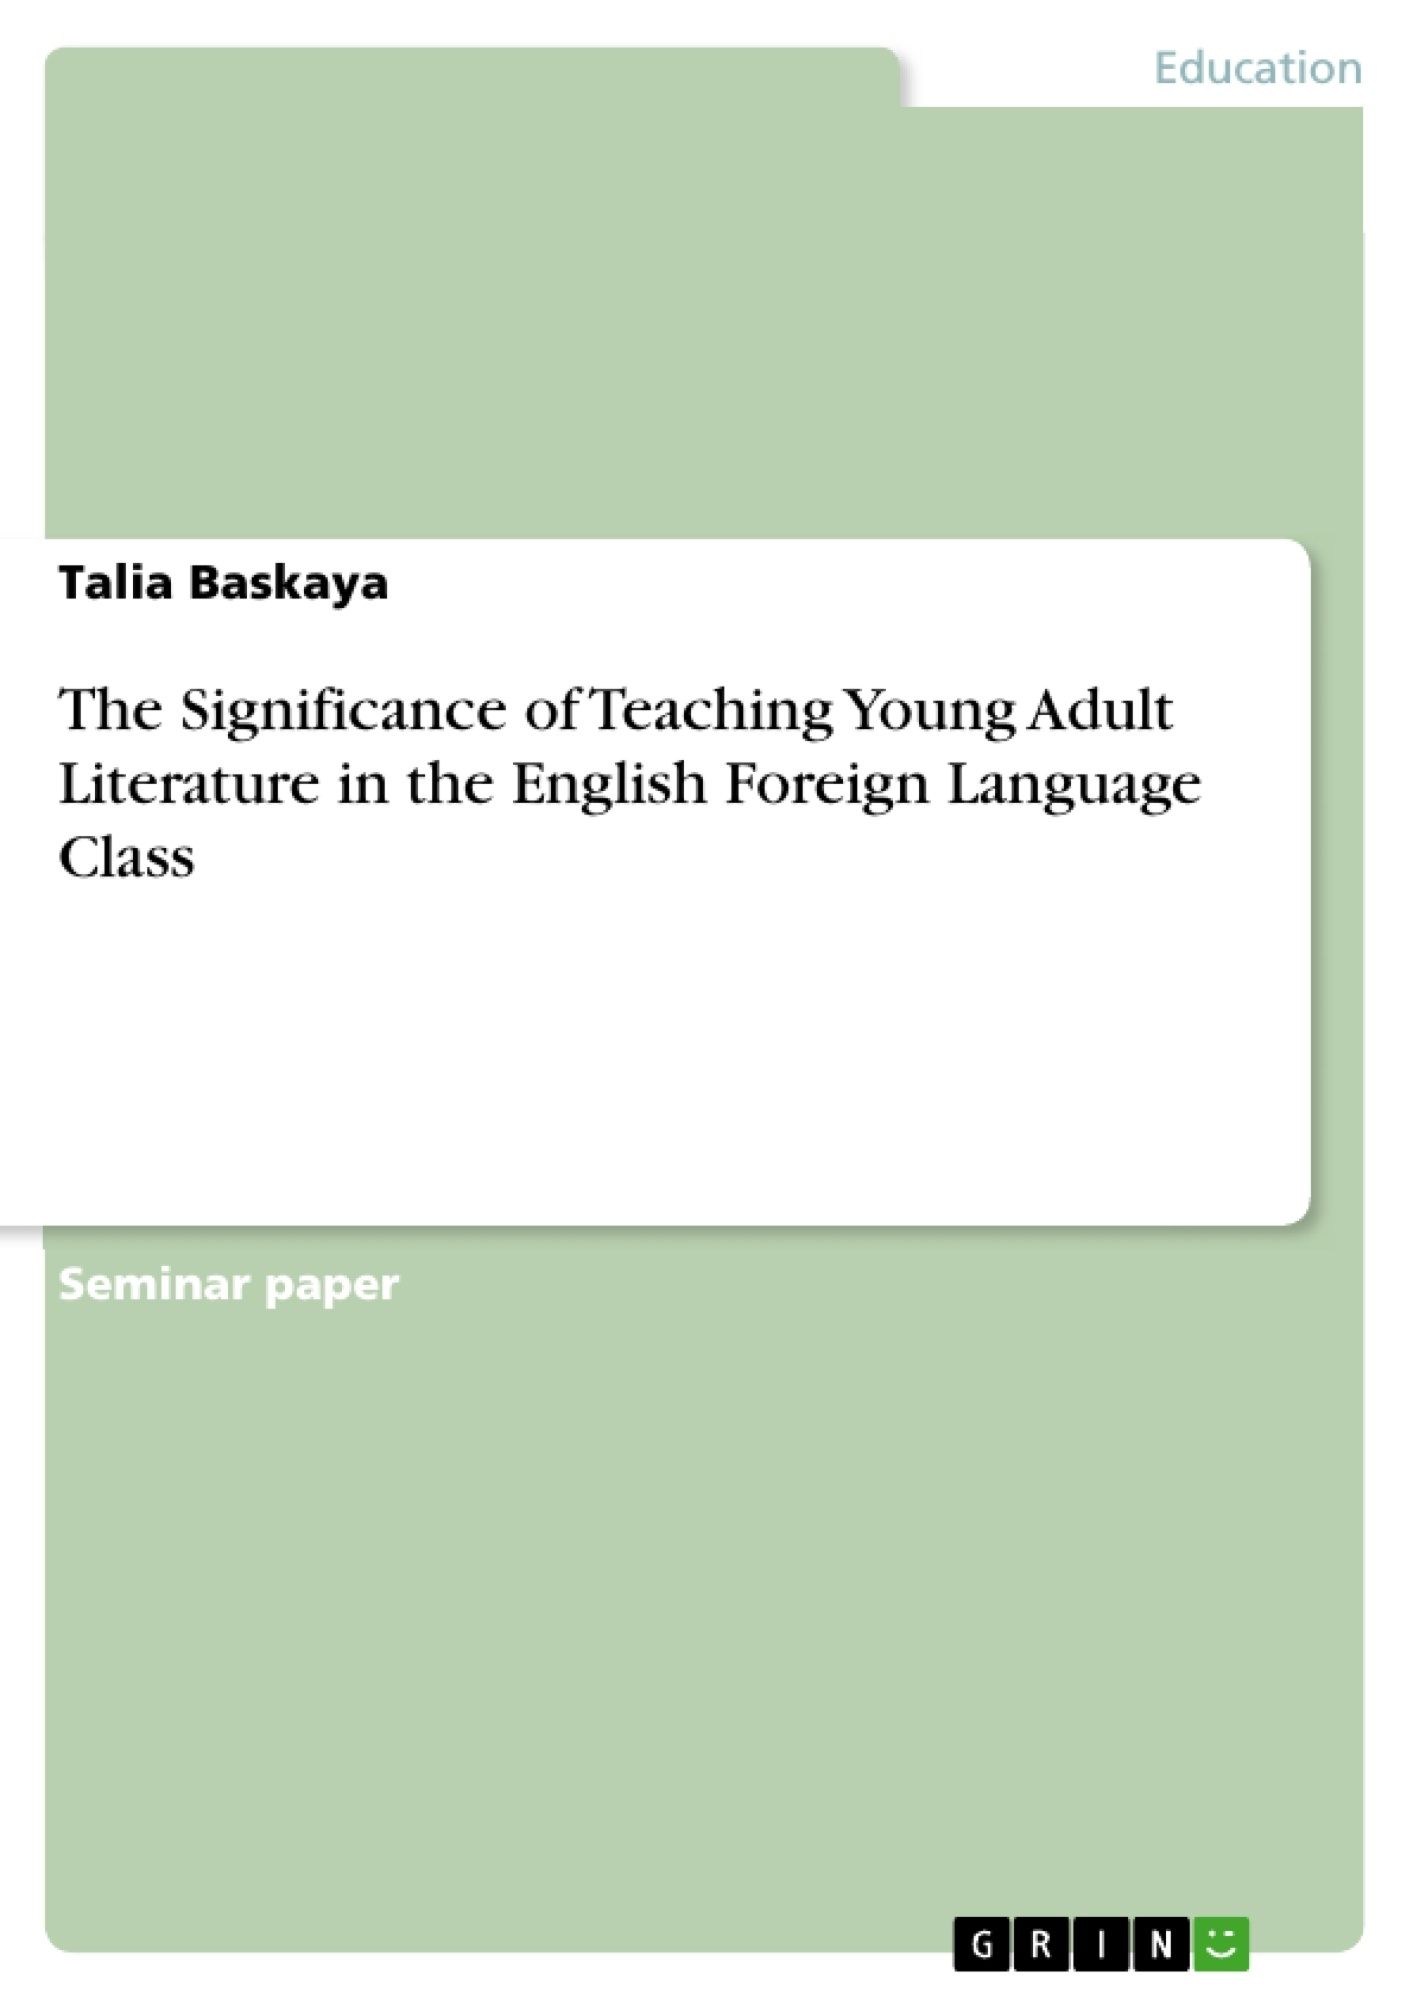 Title: The Significance of Teaching Young Adult Literature in the English Foreign Language Class